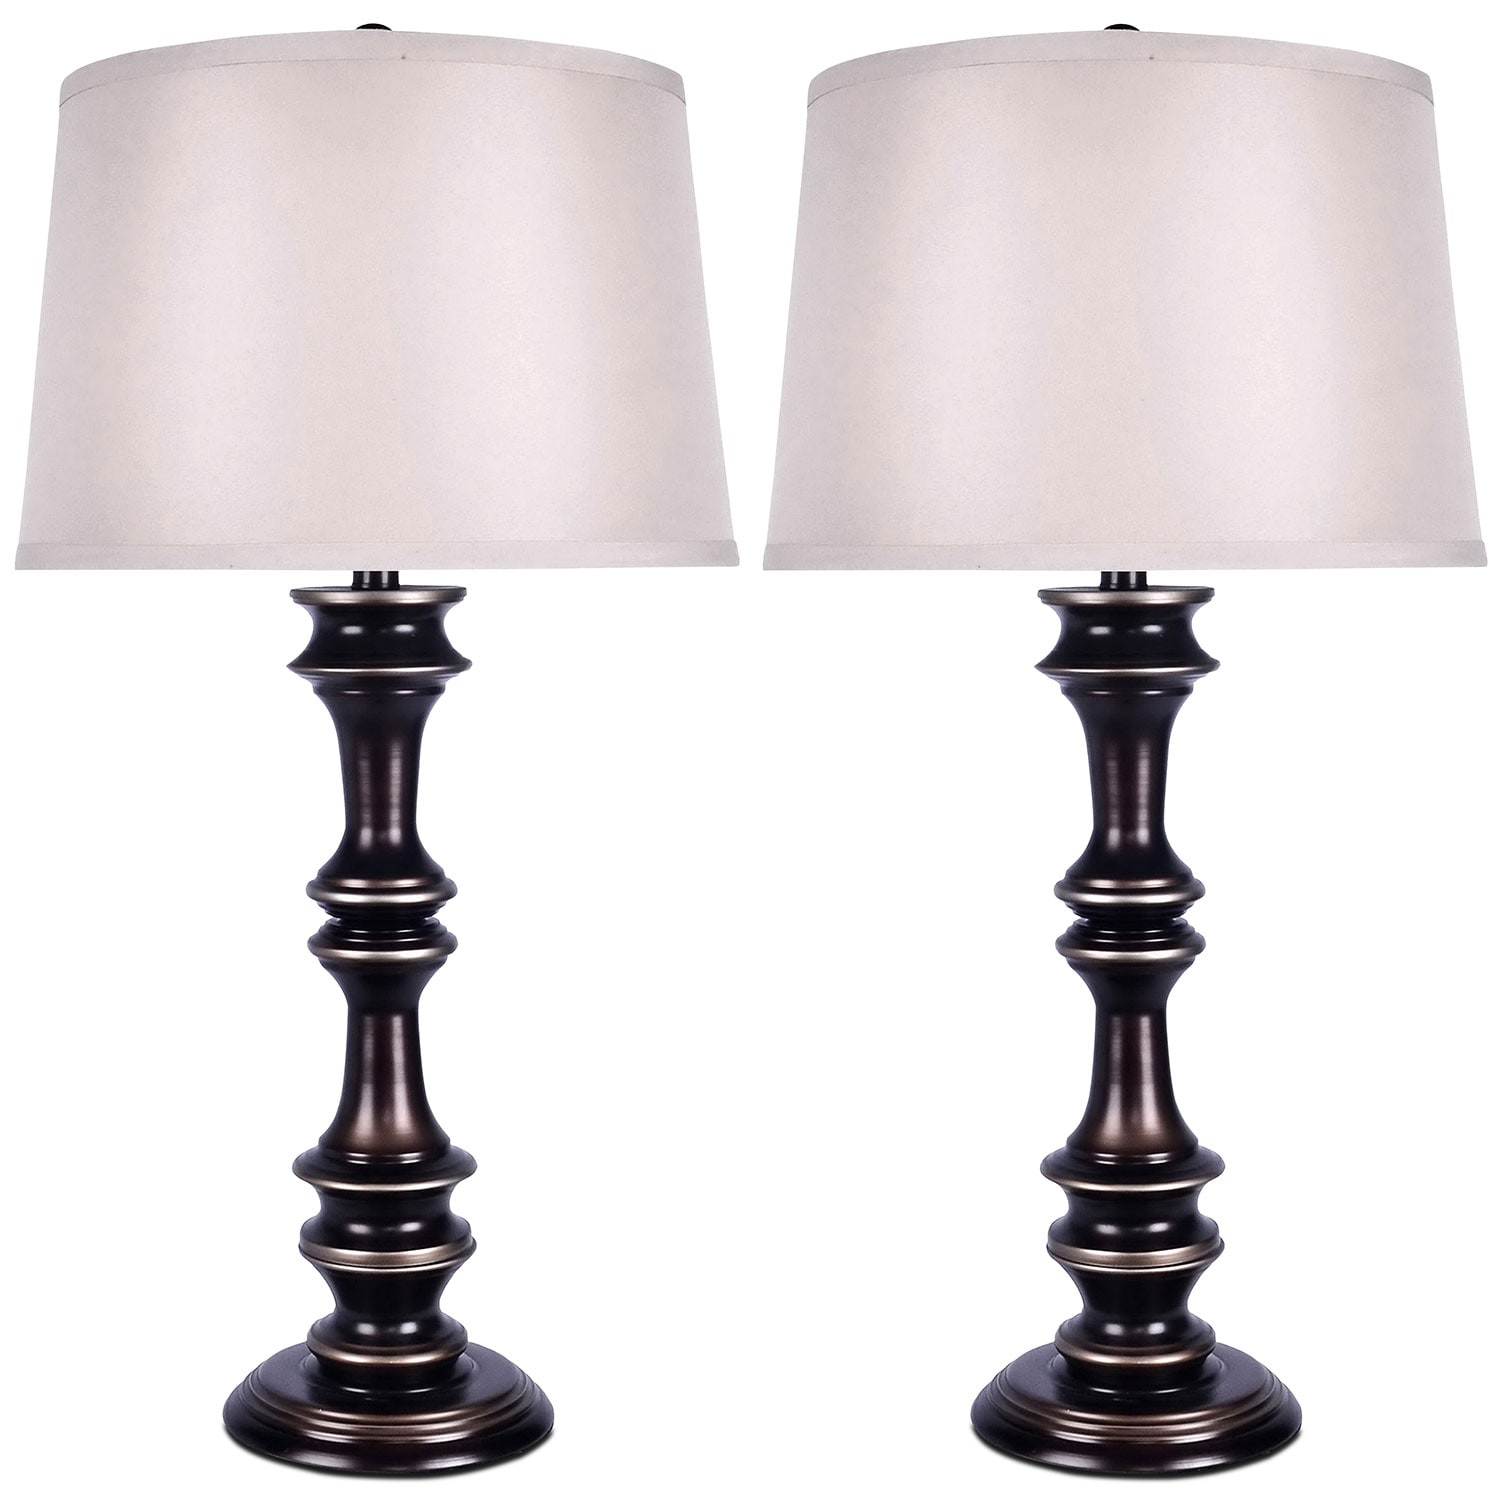 Home Accessories - Harbour Bronze 2-Piece Table Lamp Set